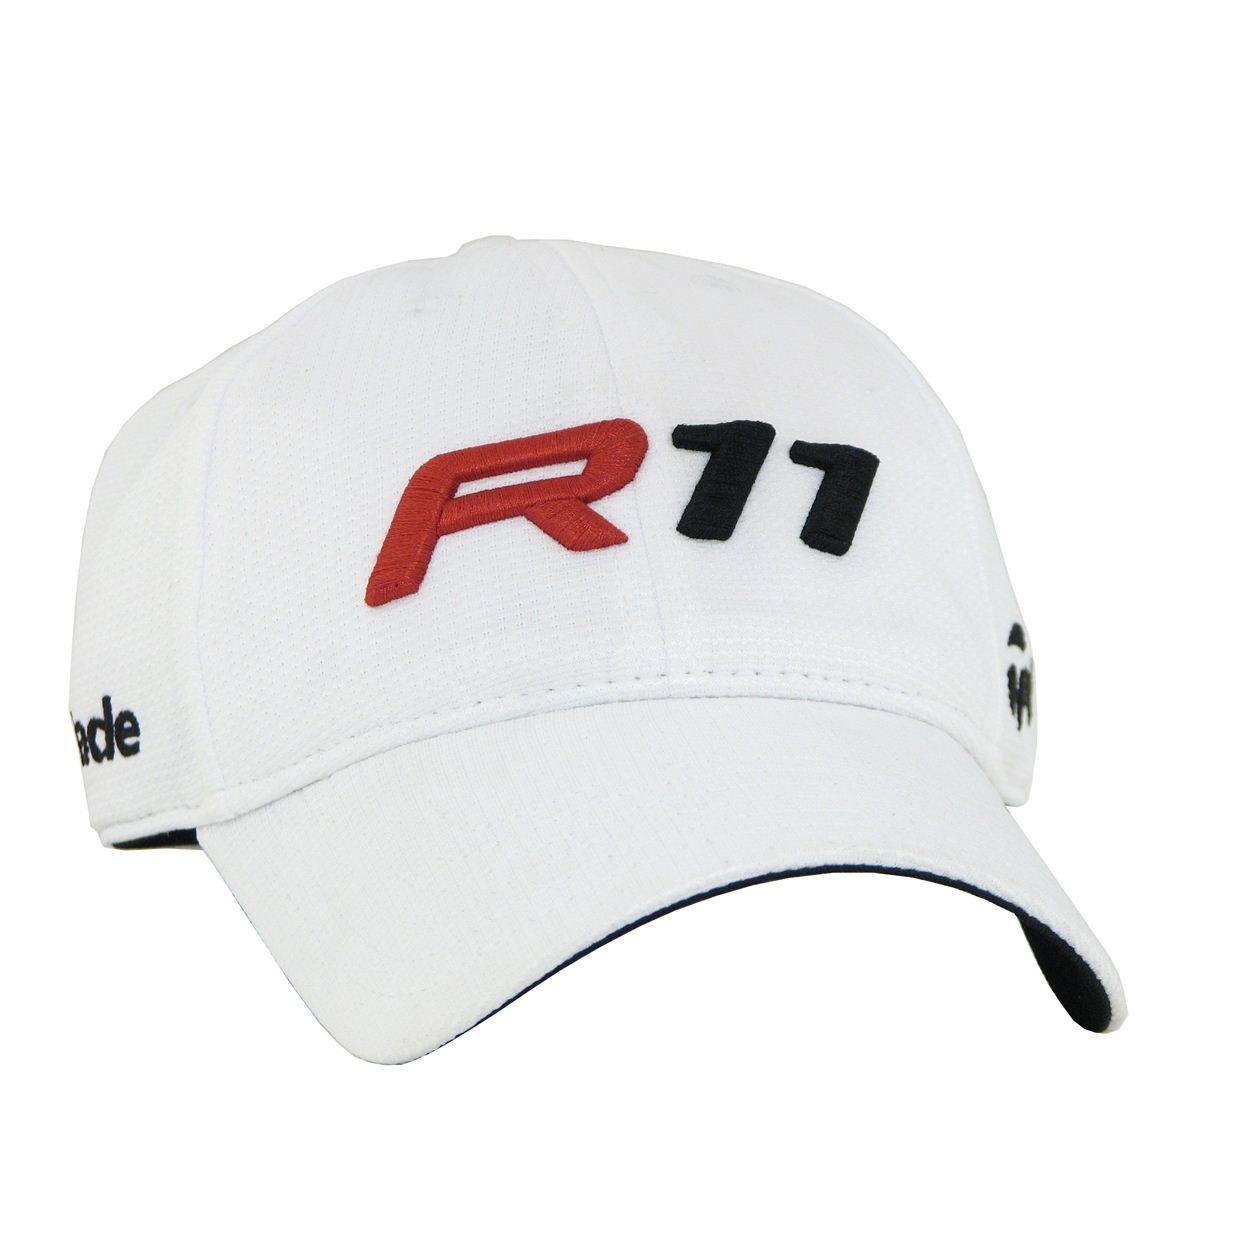 c3421ad0225c9 TaylorMade R11 White Golf Hat Cap One Size Fits All on PopScreen